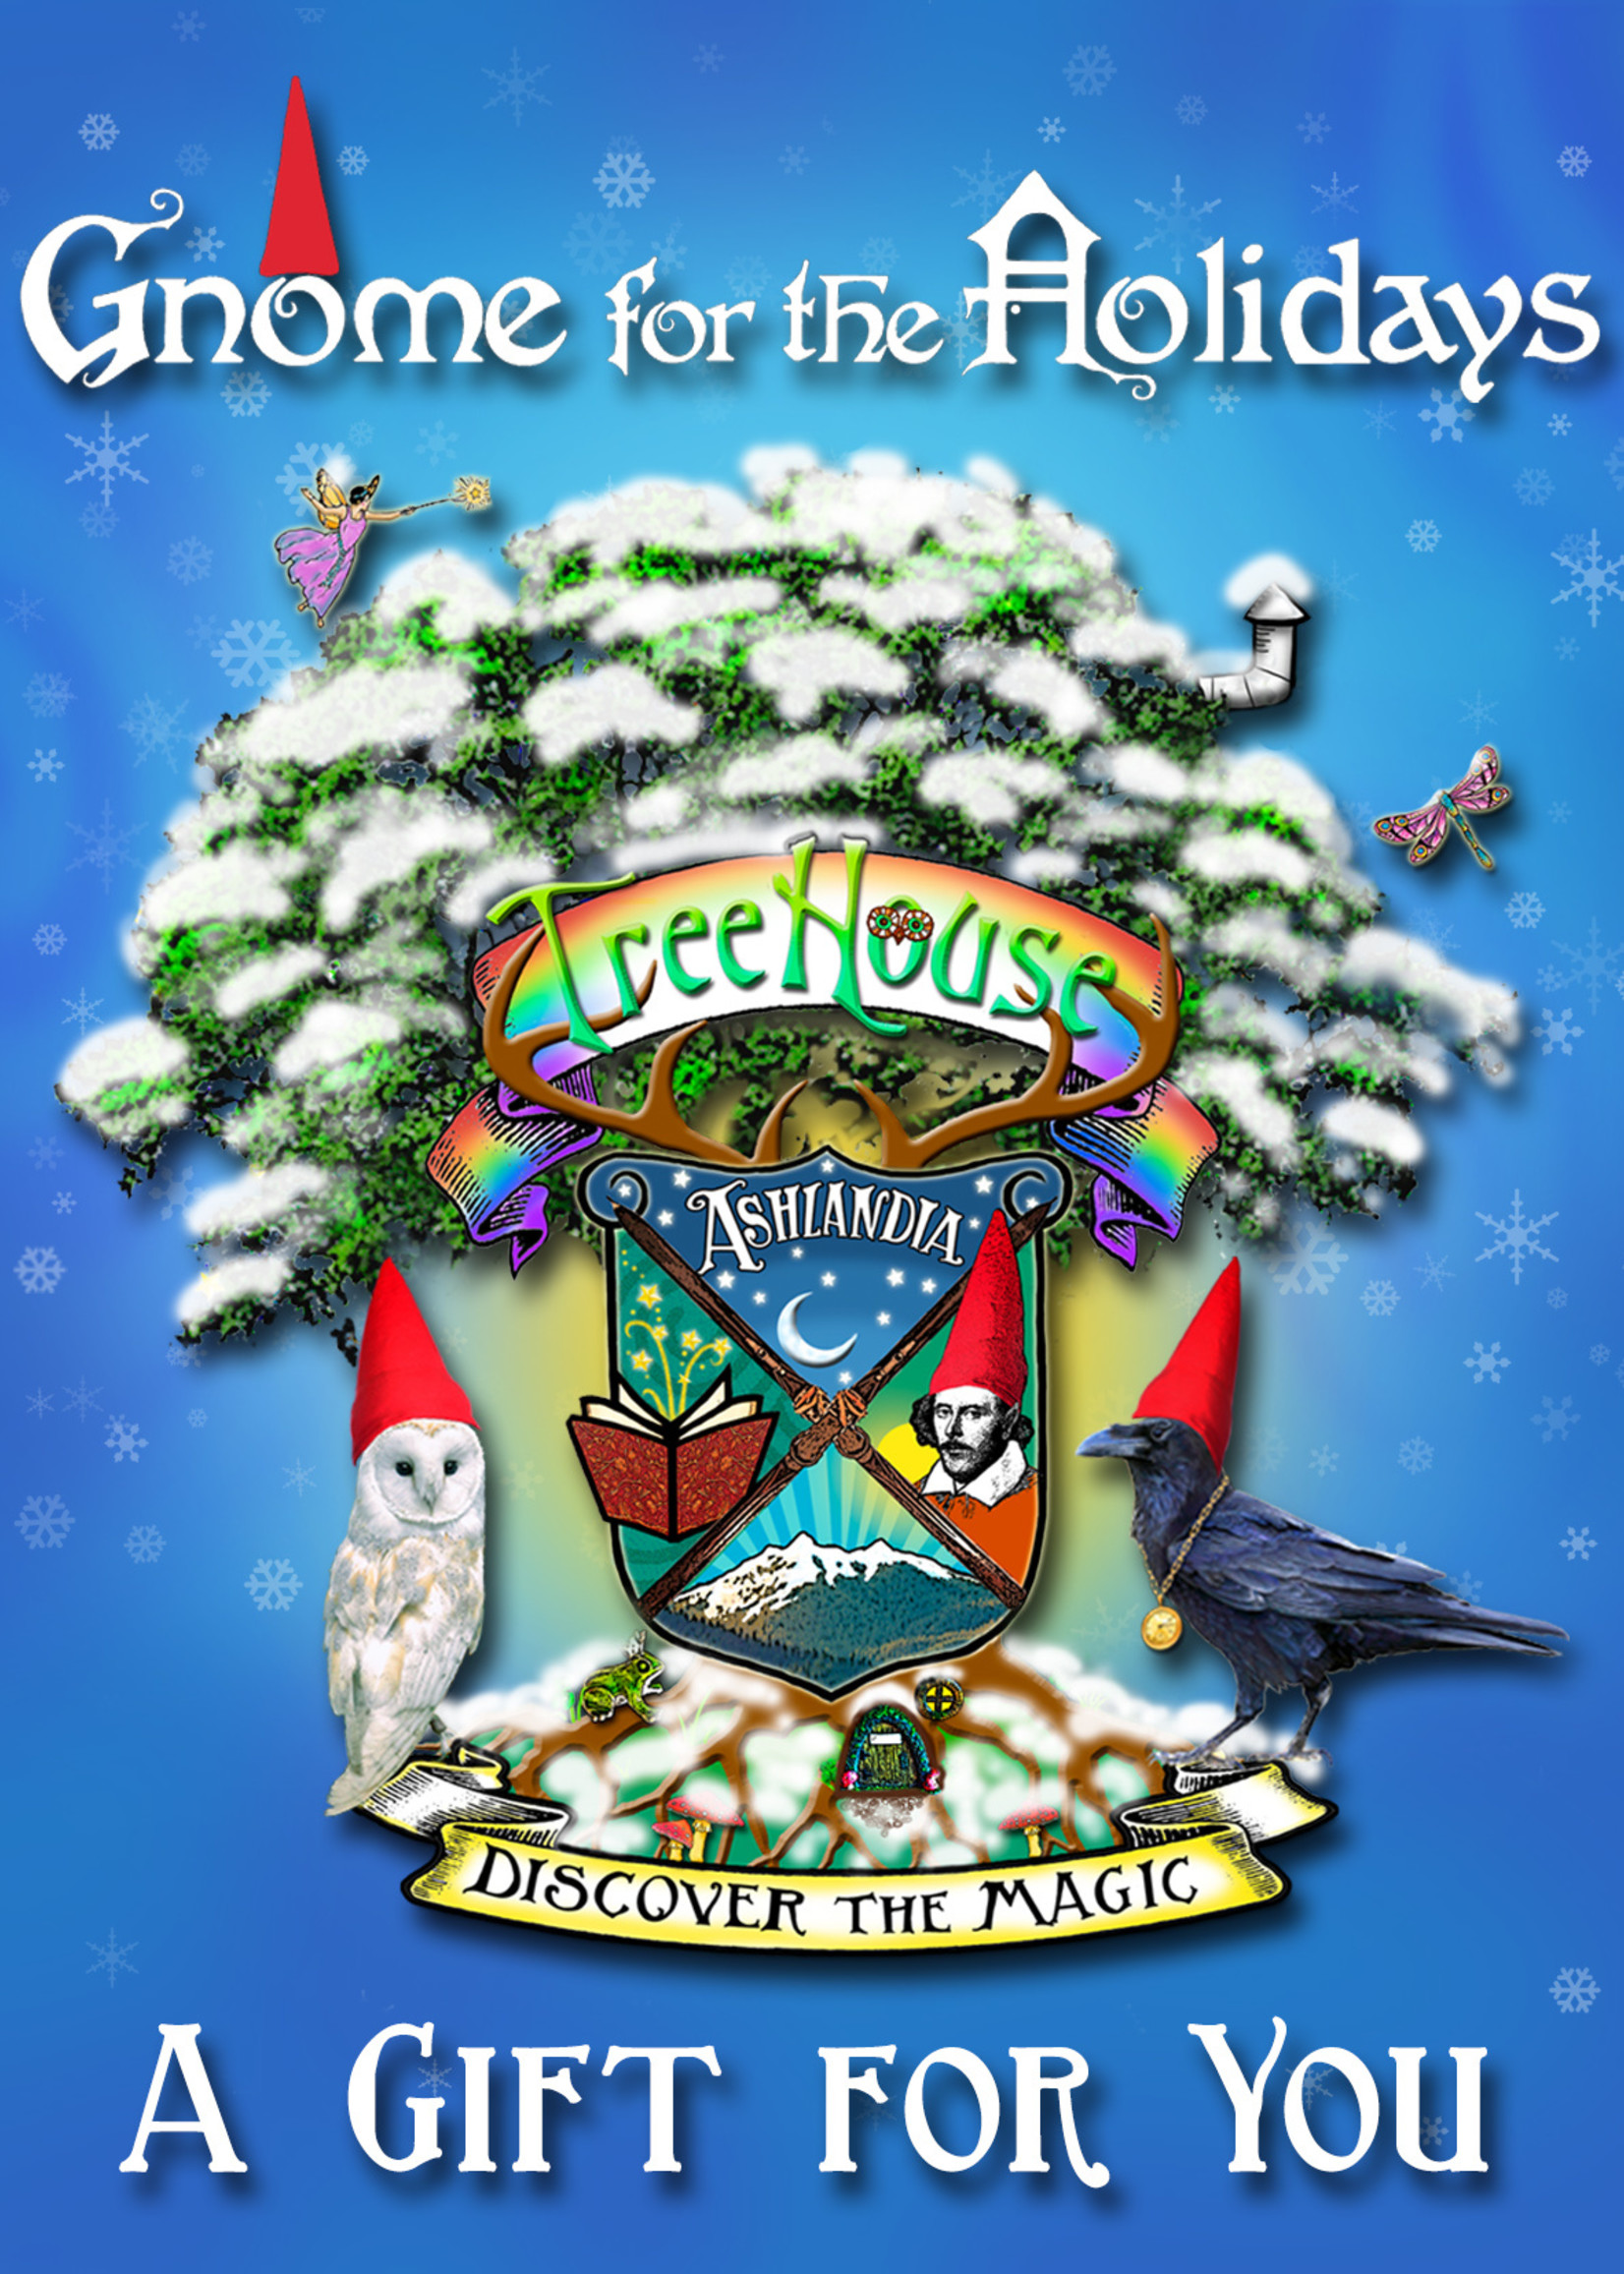 TreeHouse Gift Certificate $10.00, Web Sale